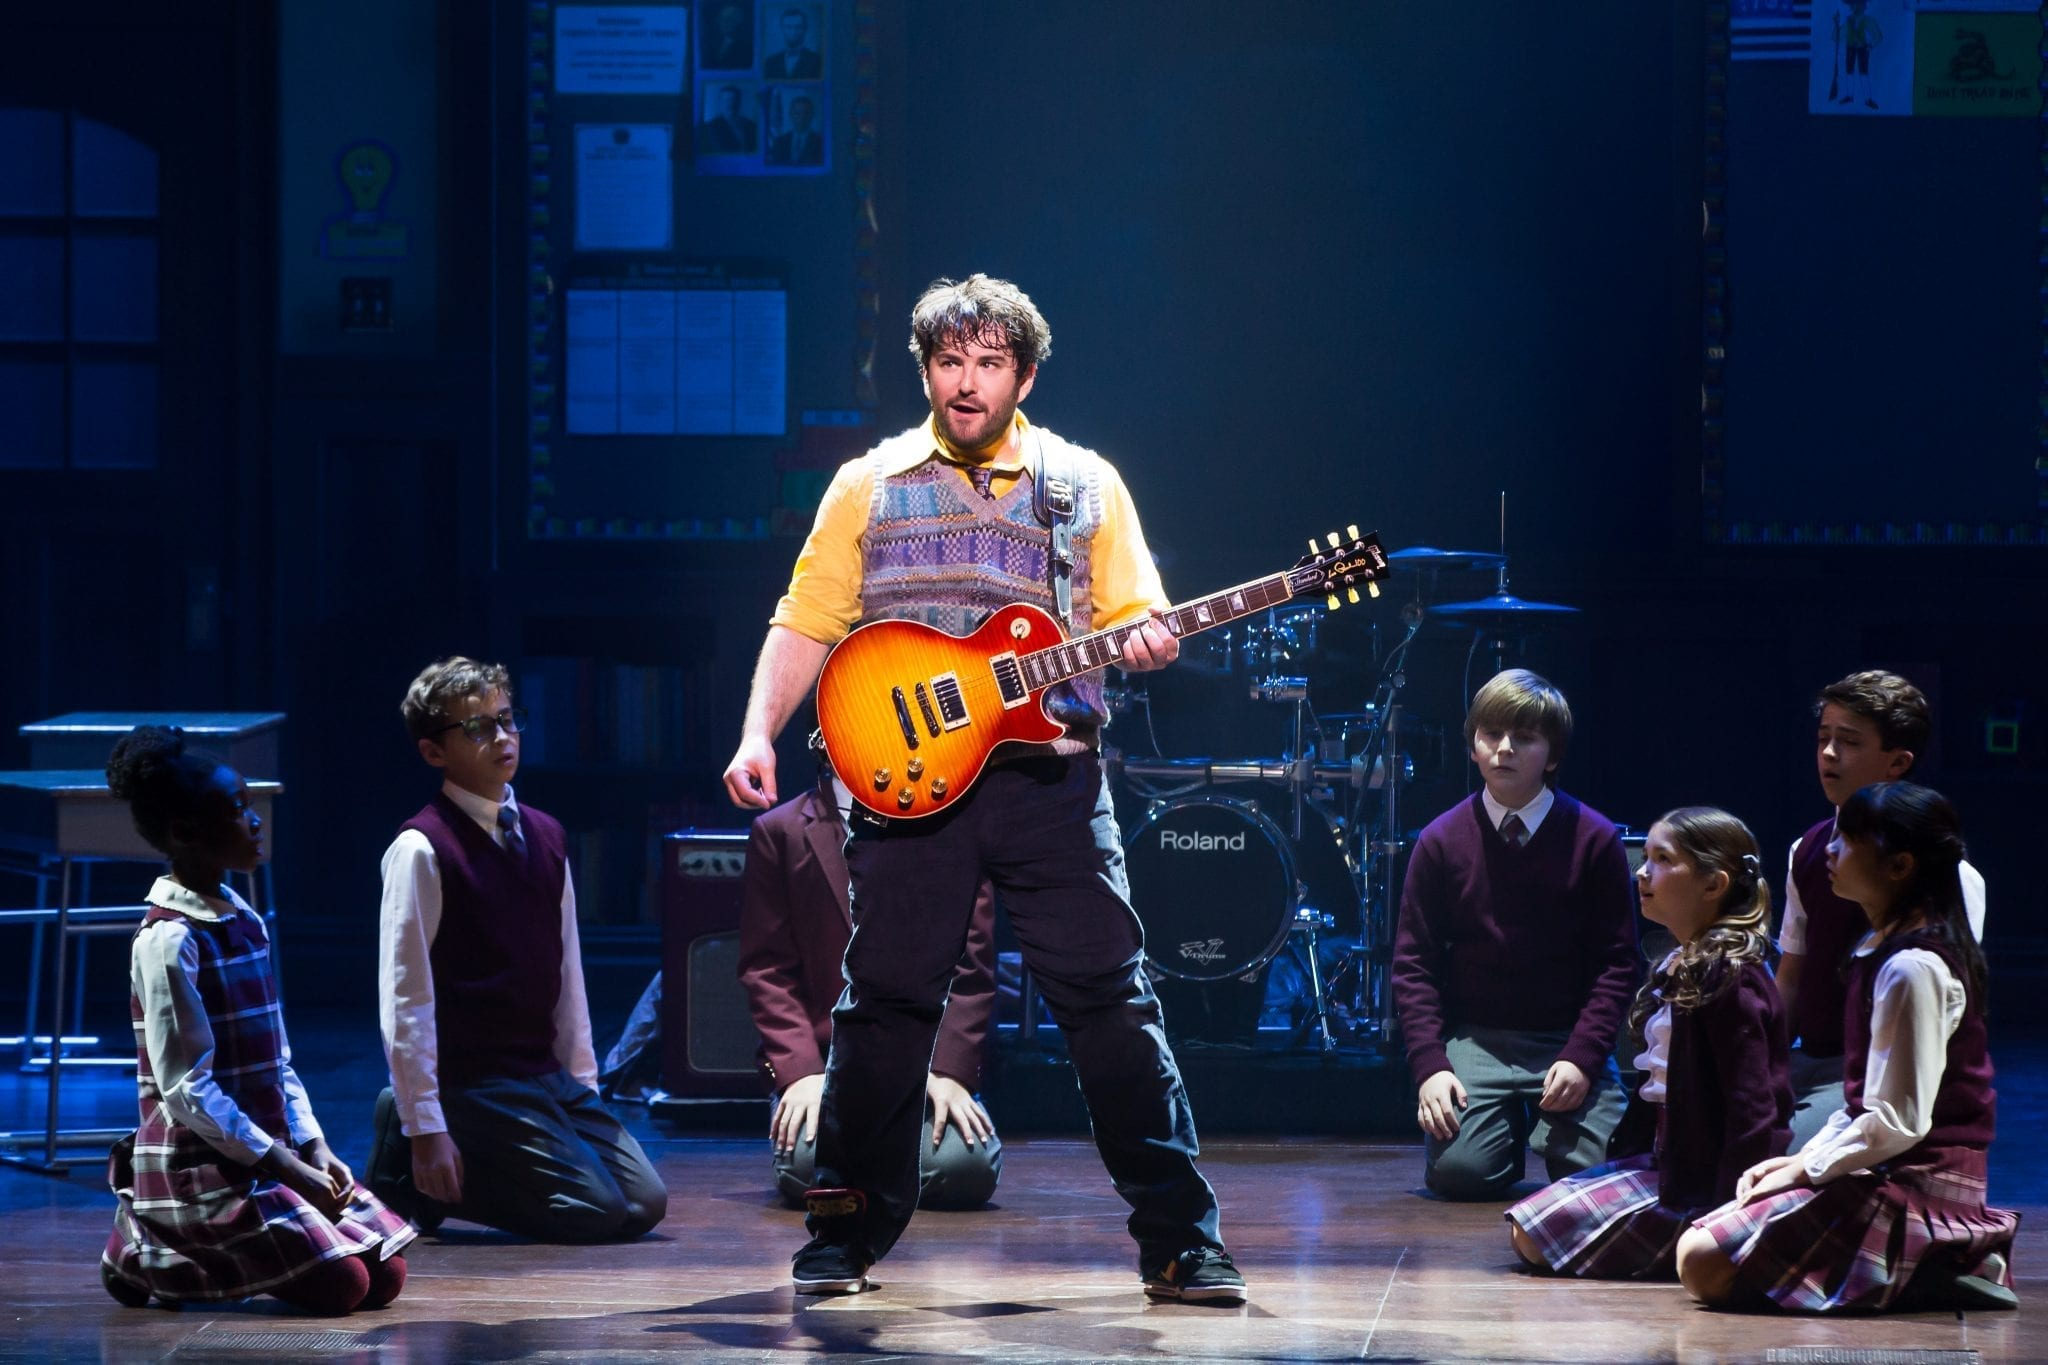 School Of Rock - The Front Row Center